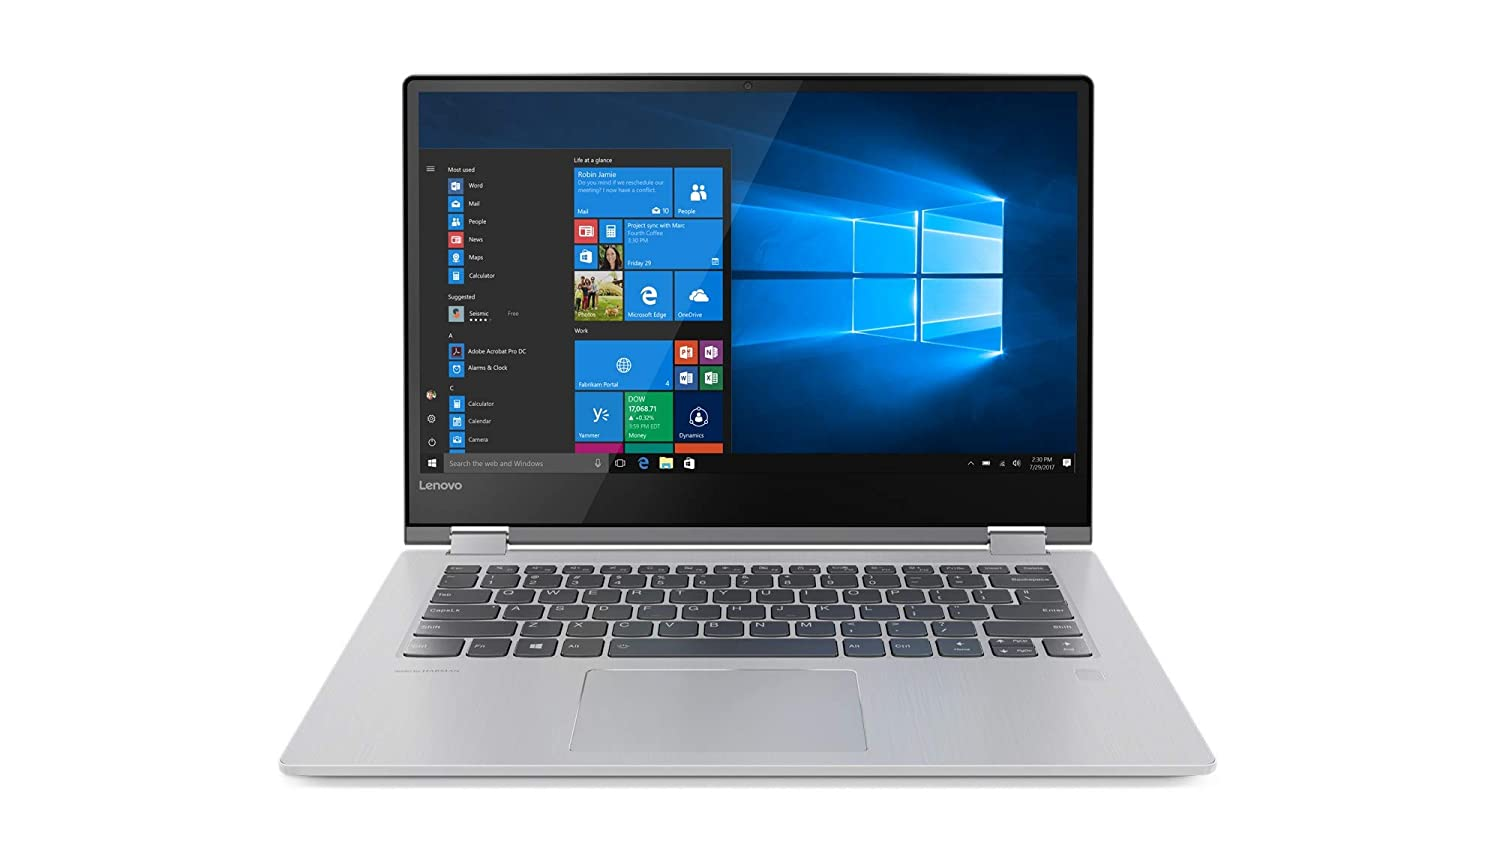 "Lenovo Yoga 530-14ARR - Portátil táctil Convertible de 14"" HD (Intel Core i3-7020U, 4GB de RAM, 128GB de SSD, Windows 10) Gris - Teclado QWERTY Español"